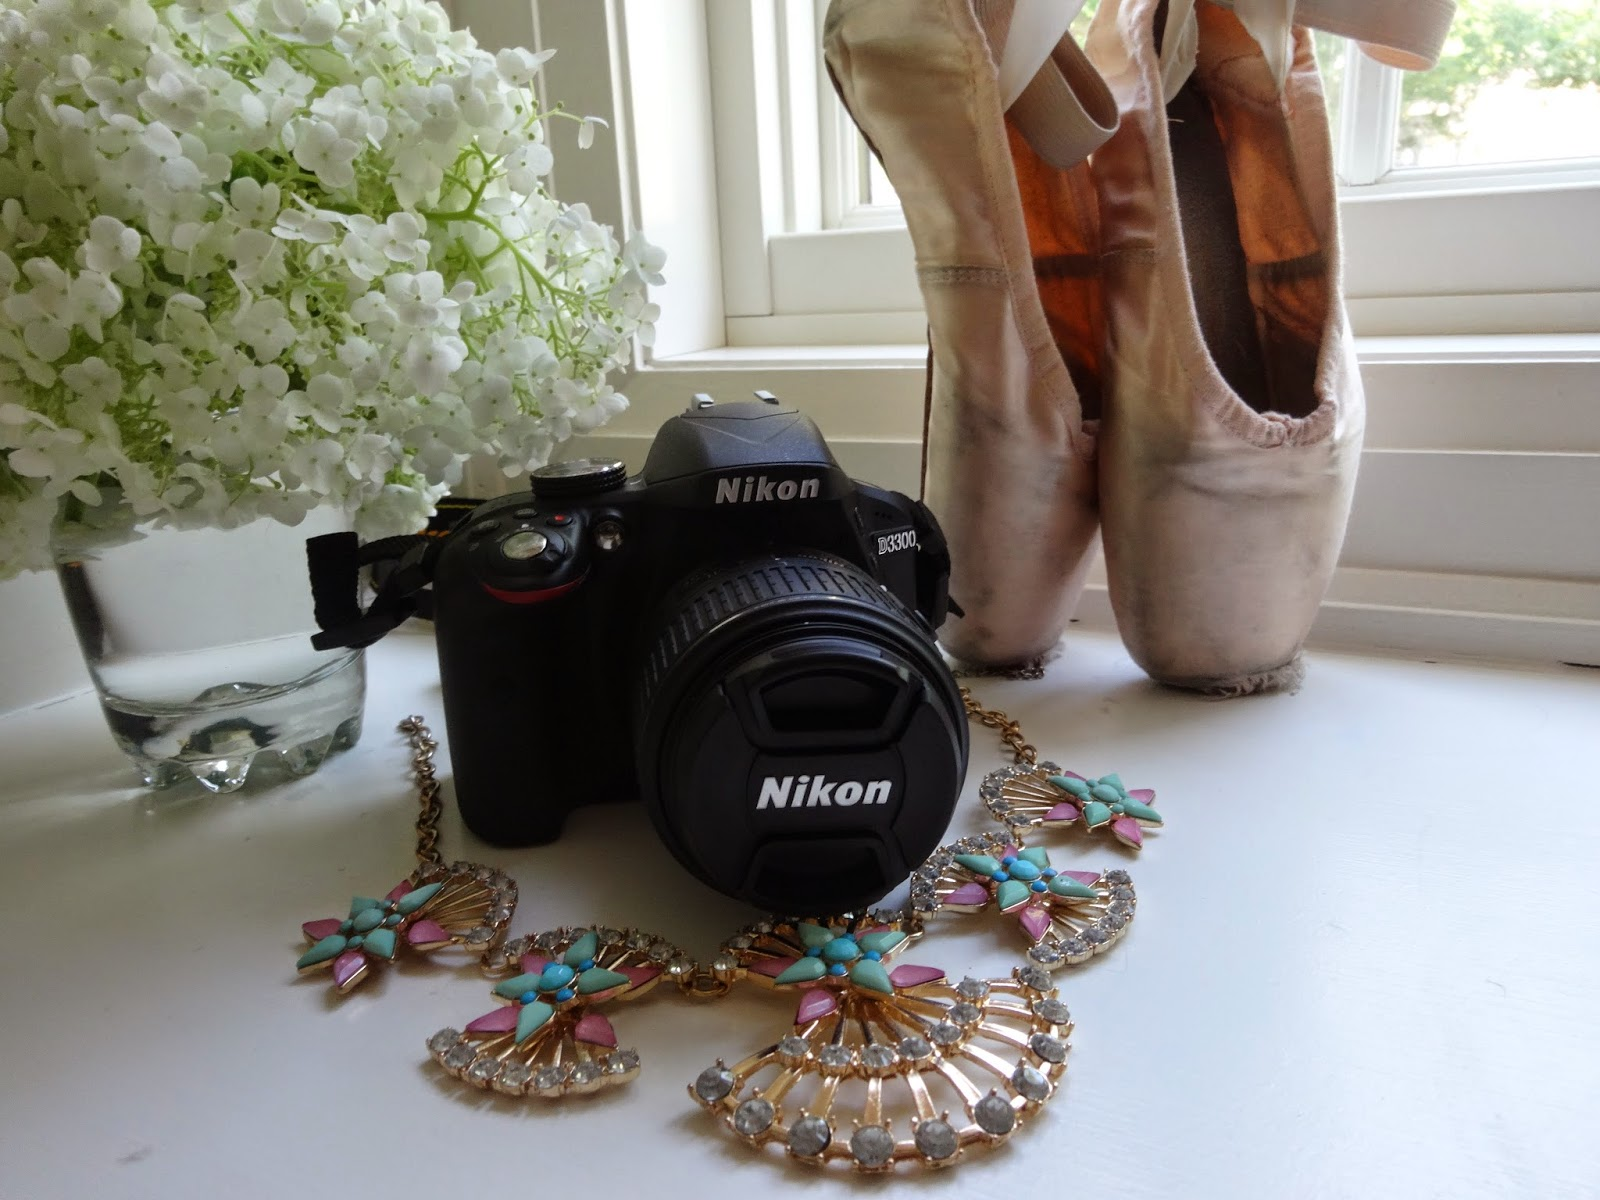 Fashion & Beauty Inc, Nikon, Artsy